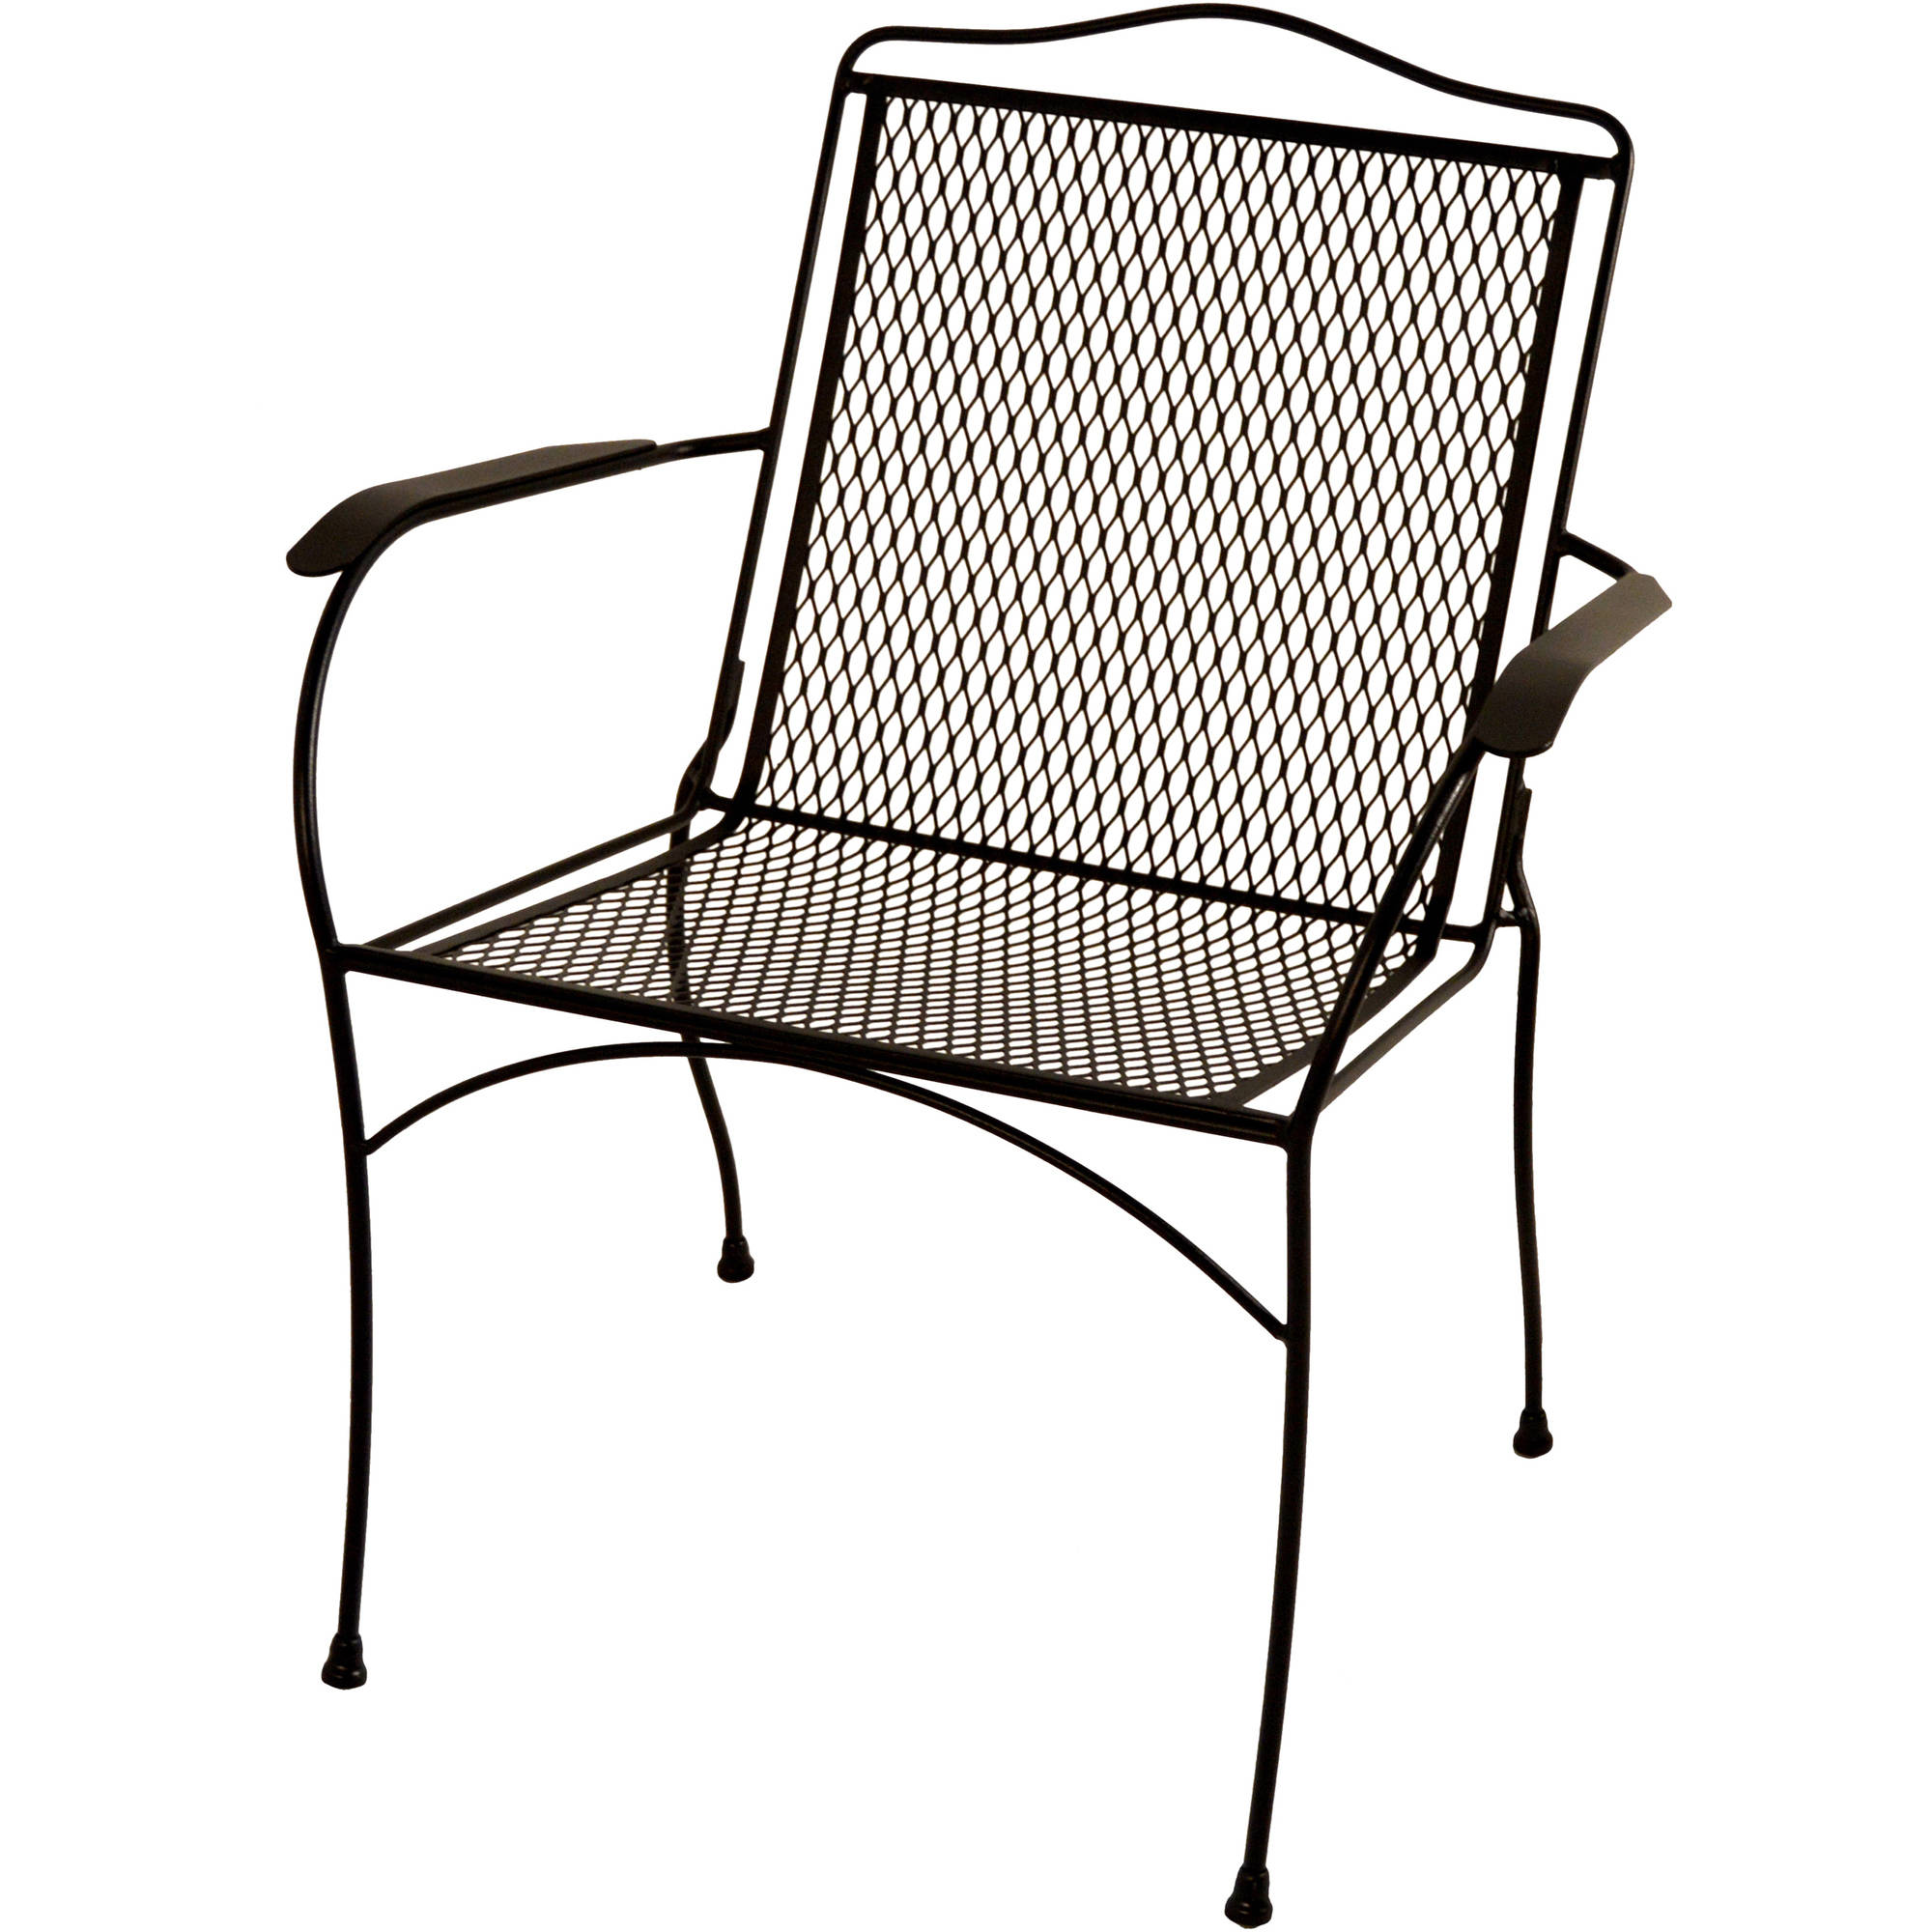 wrought iron chairs arlington house wrought iron chair KMRMKTB